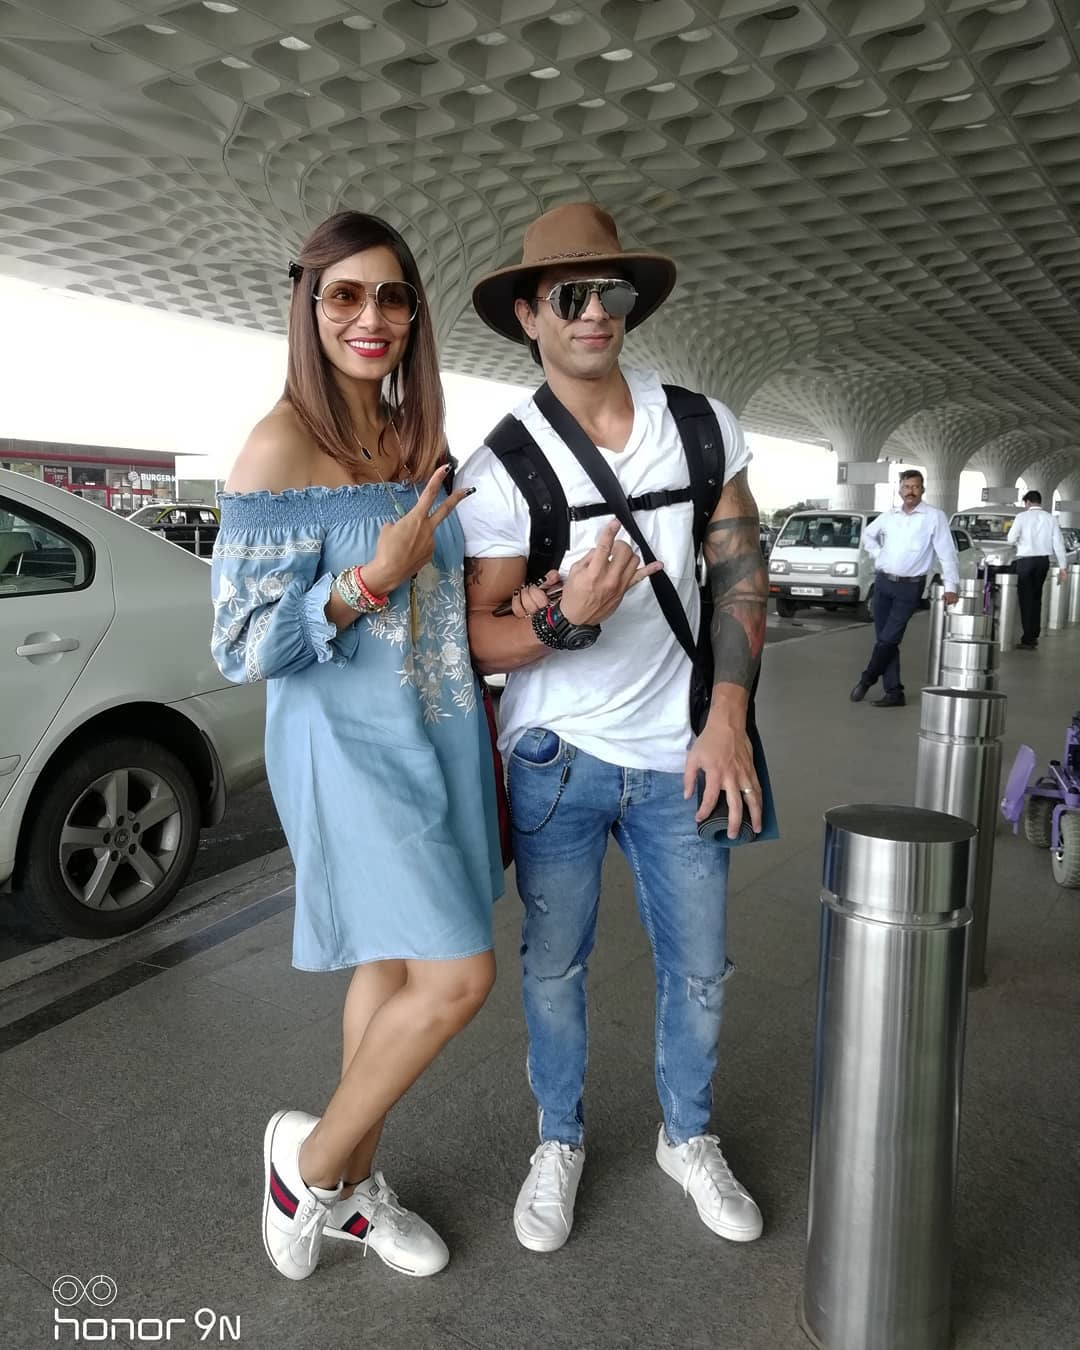 2 karan singh grover - at airport with bipasha basu